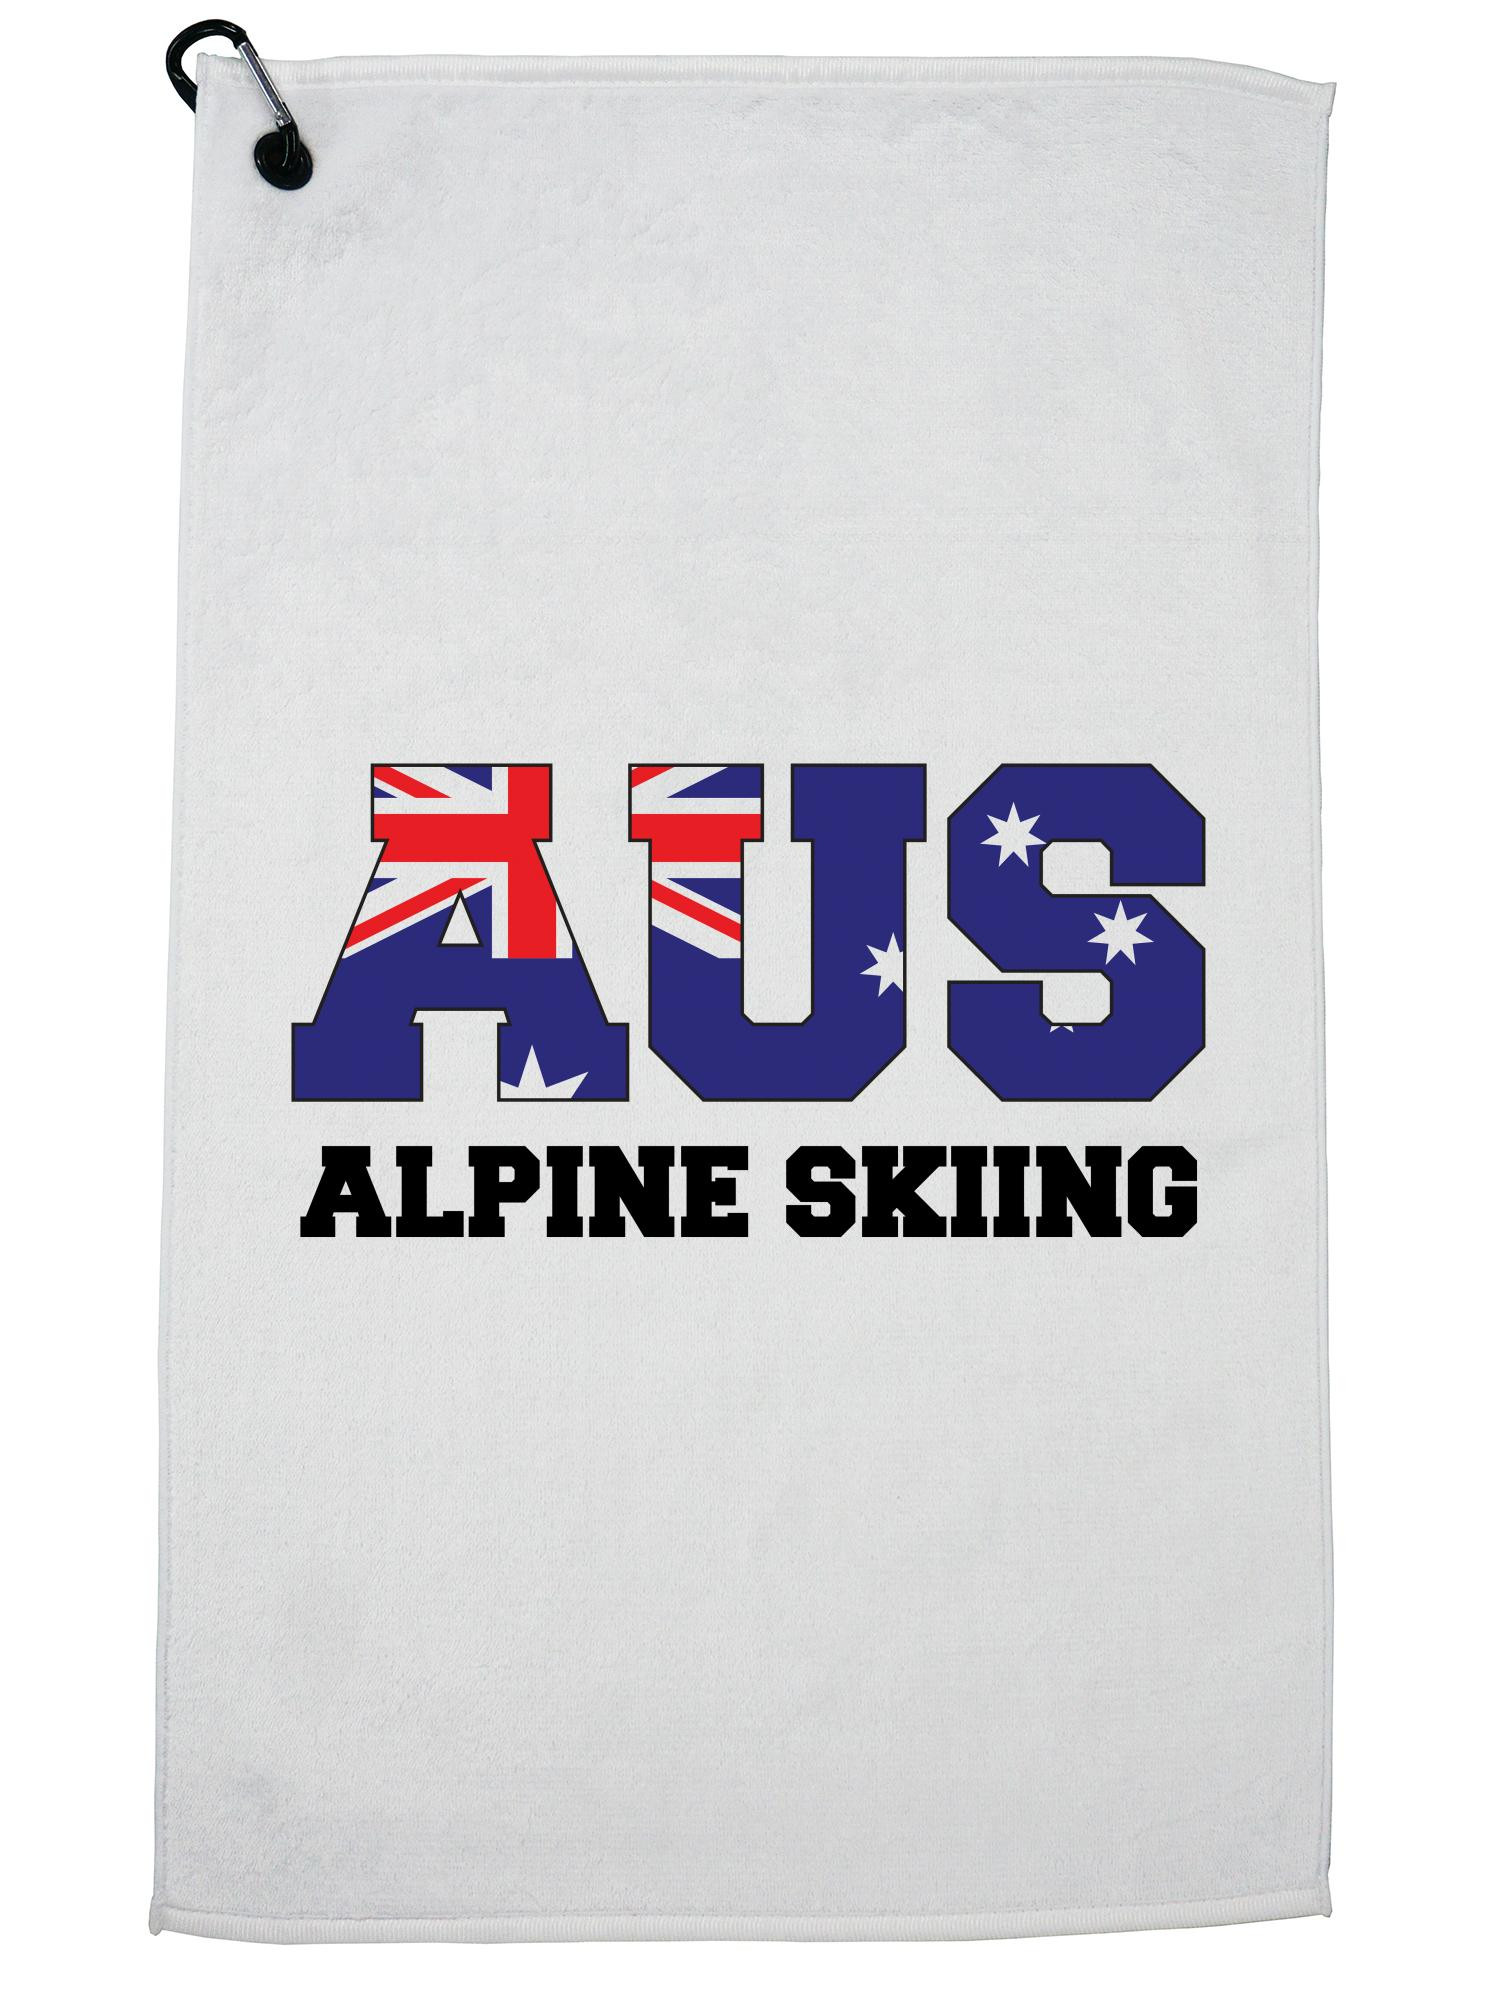 Australia Alpine Skiing Winter Olympic Korea AUS Flag Golf Towel with Carabiner Clip by Hollywood Thread